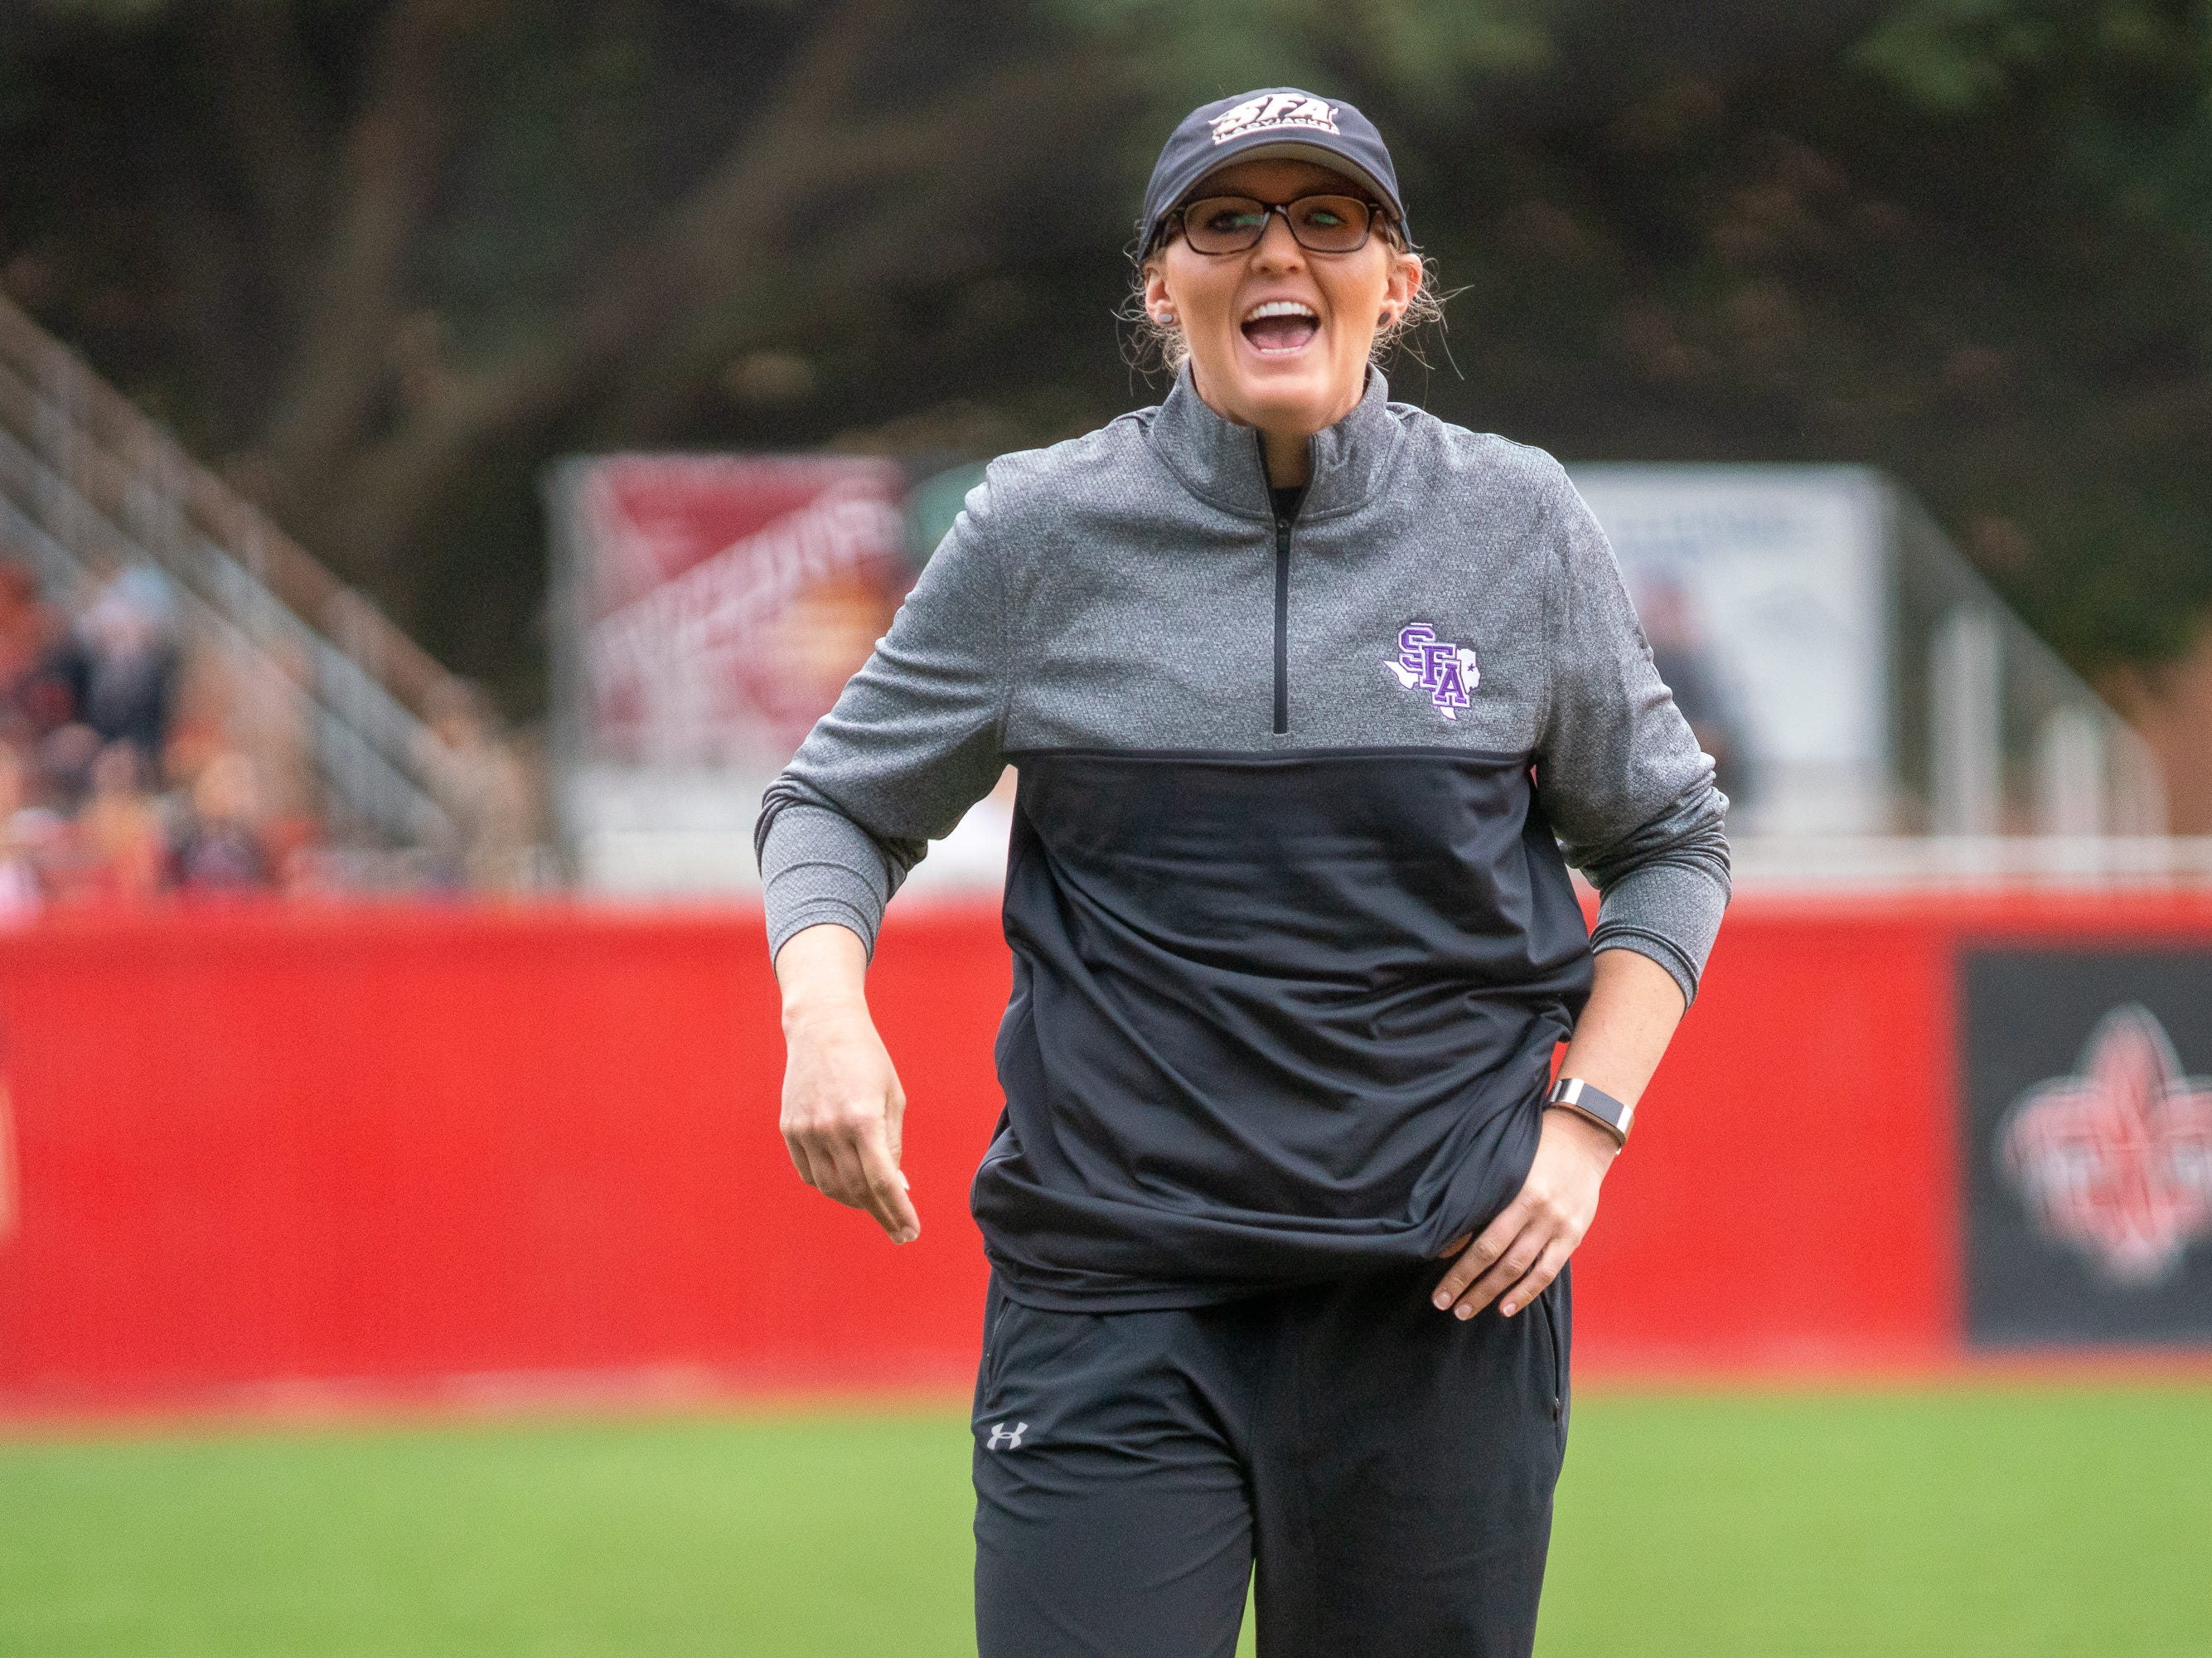 Stephen F. Austin's head softball coach Nicole Dickson yells out to her players from the sidelines as the Ragin' Cajuns take on Stephen F. Austin at Lamson Park on Saturday, Feb. 16, 2019.